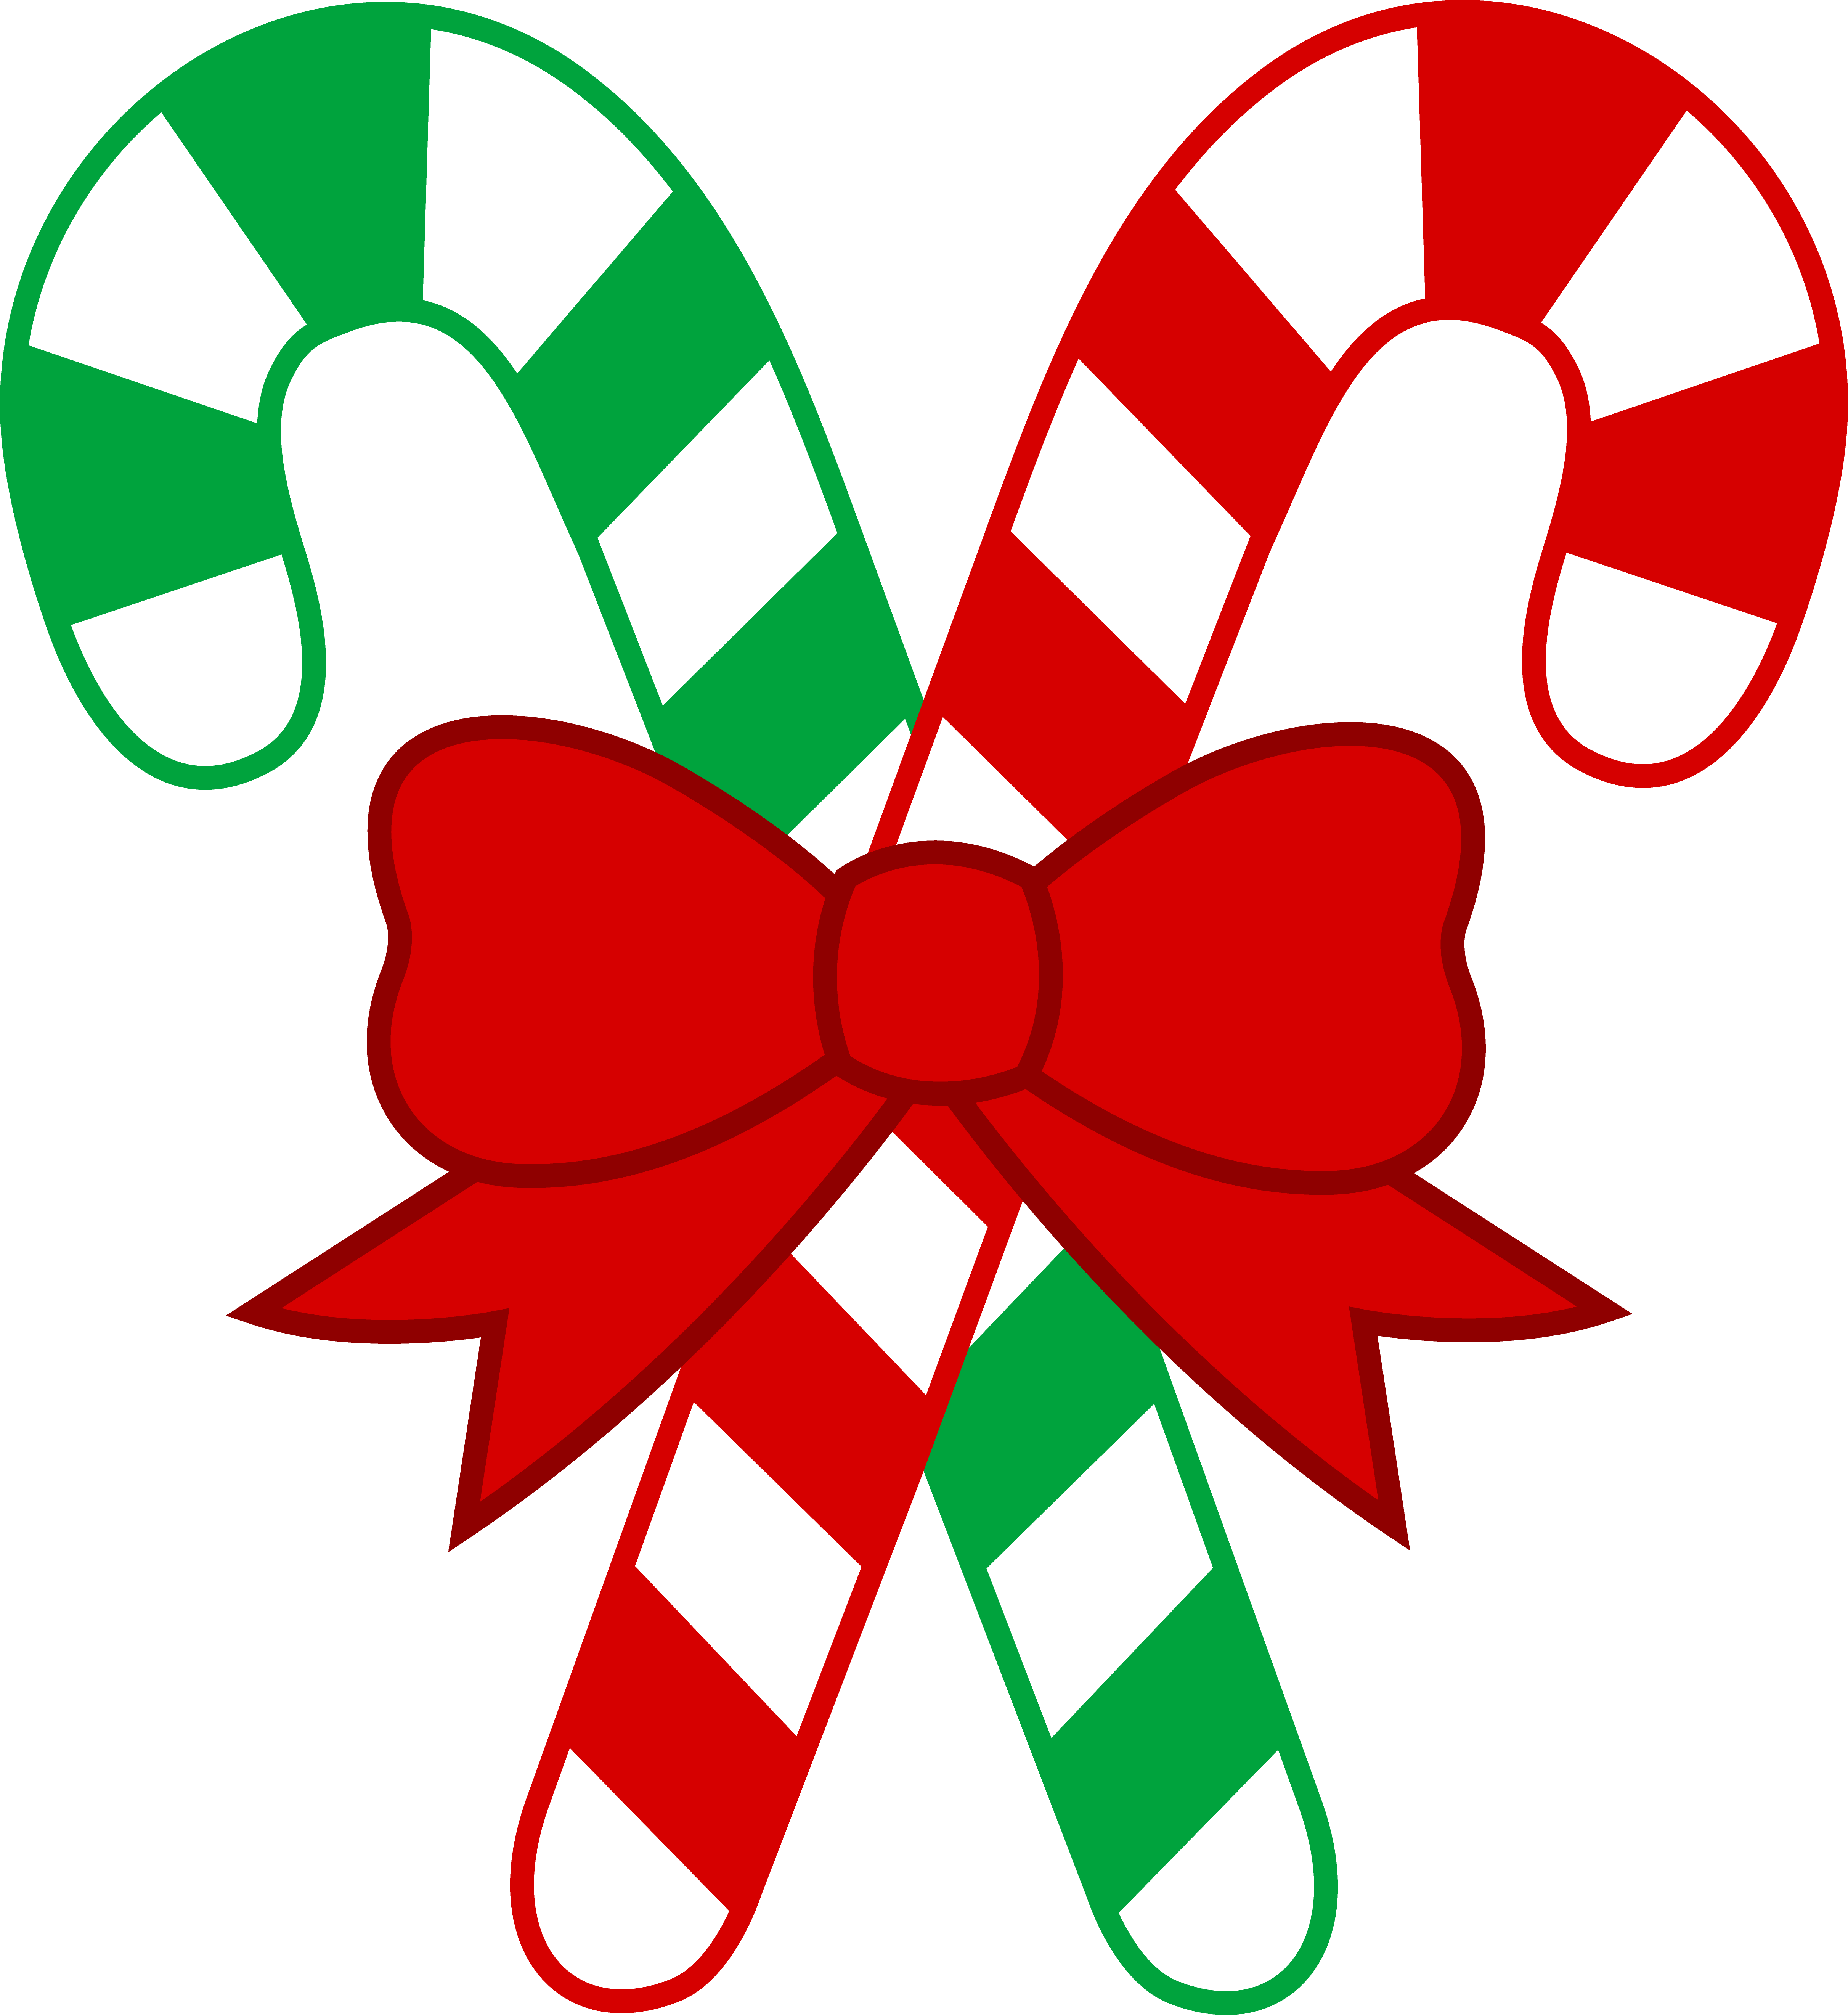 Words clipart tradition. Candy cane clip art